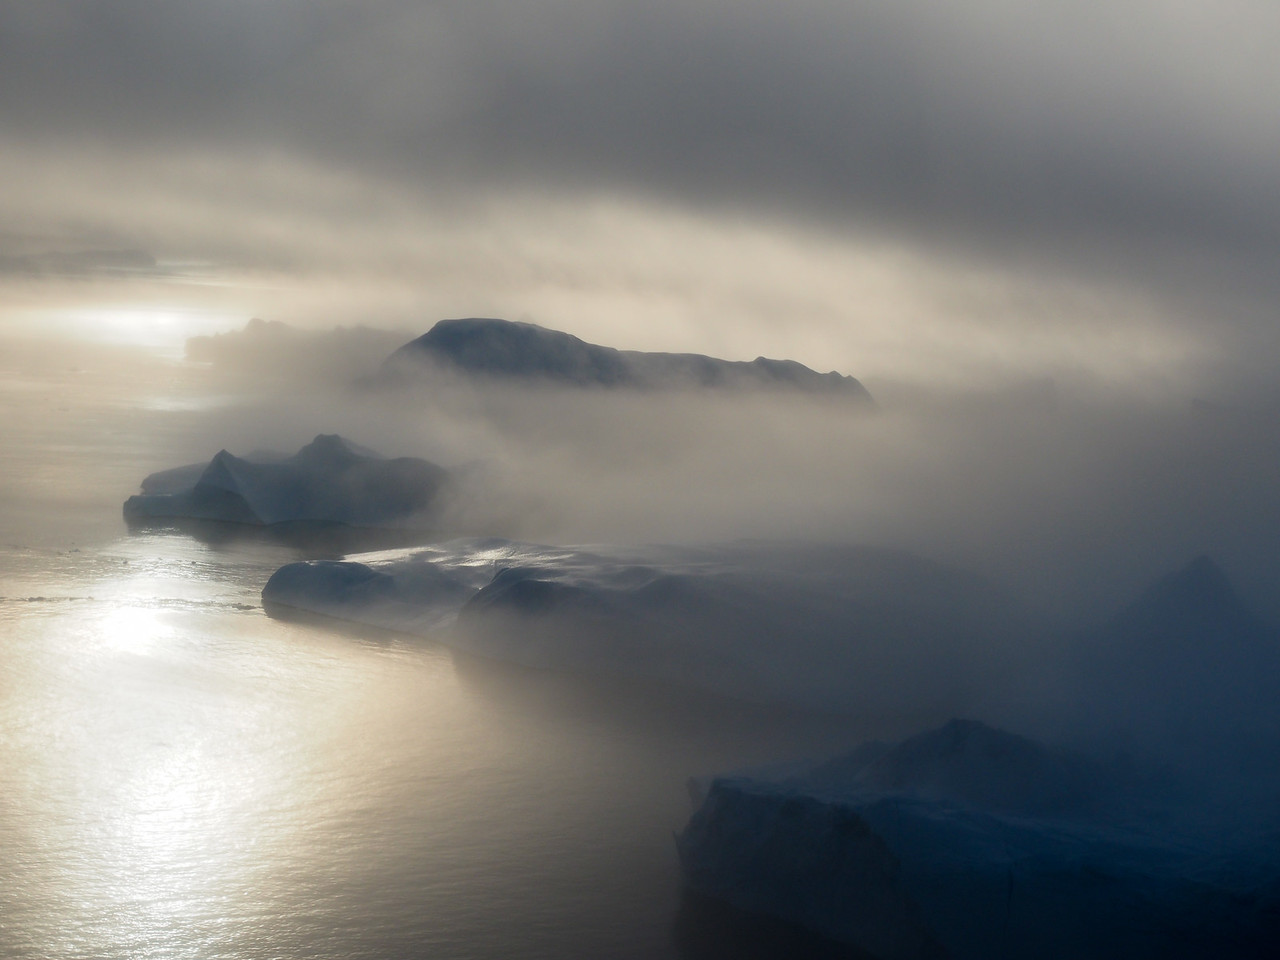 Sea fog over the icebergs in Ilulissat